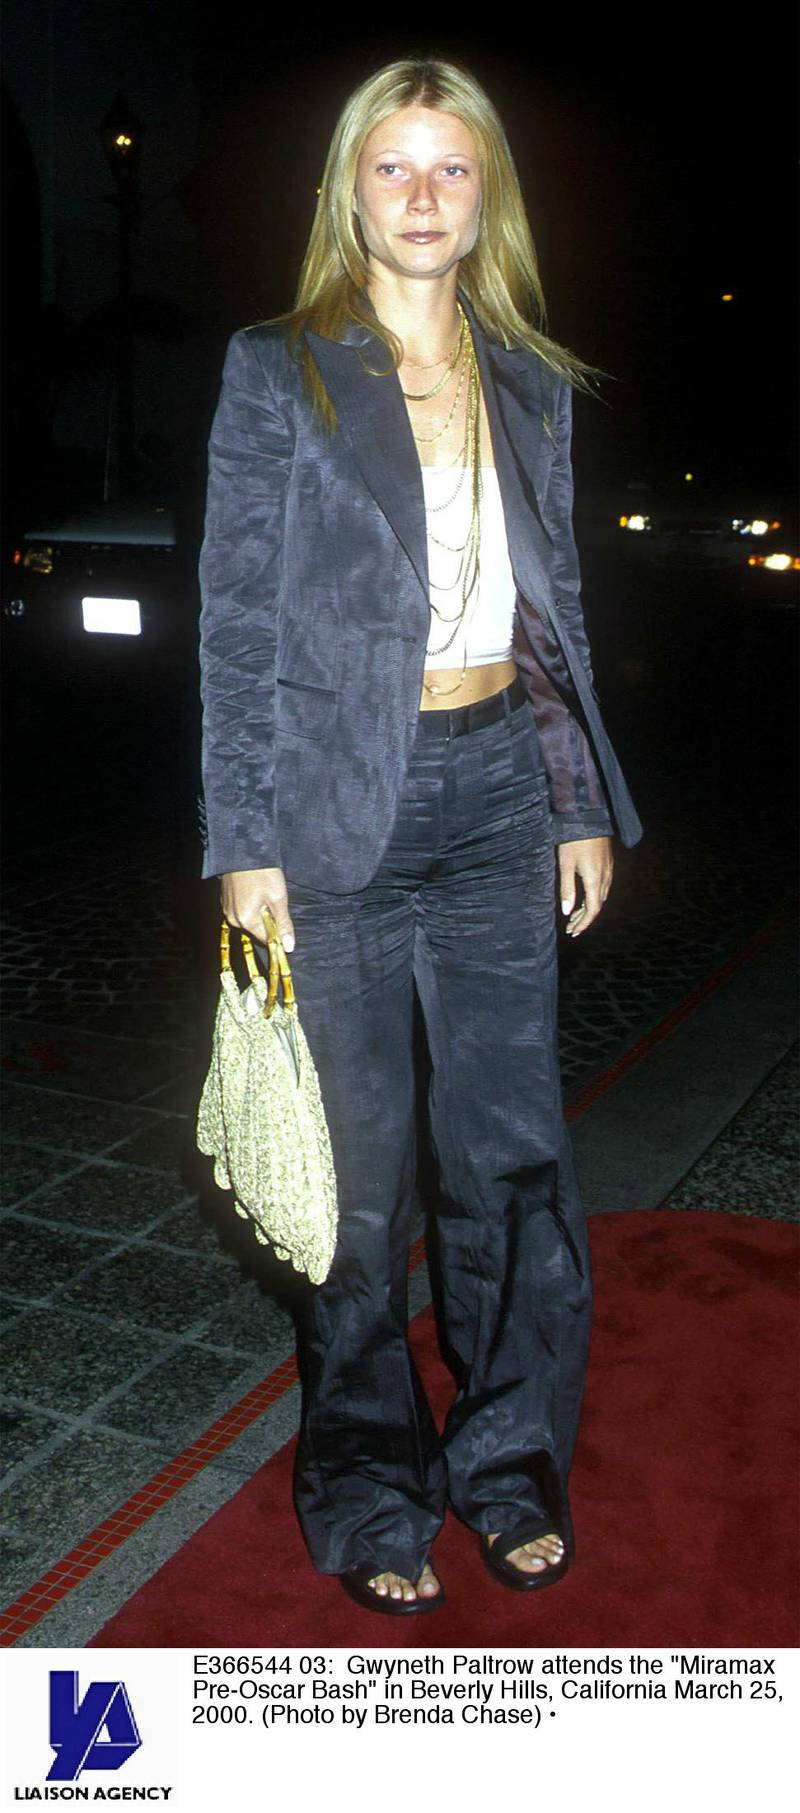 """E366544 03: Gwyneth Paltrow attends the """"Miramax Pre-Oscar Bash"""" in Beverly Hills, California March 25, 2000. (Photo by Brenda Chase)"""